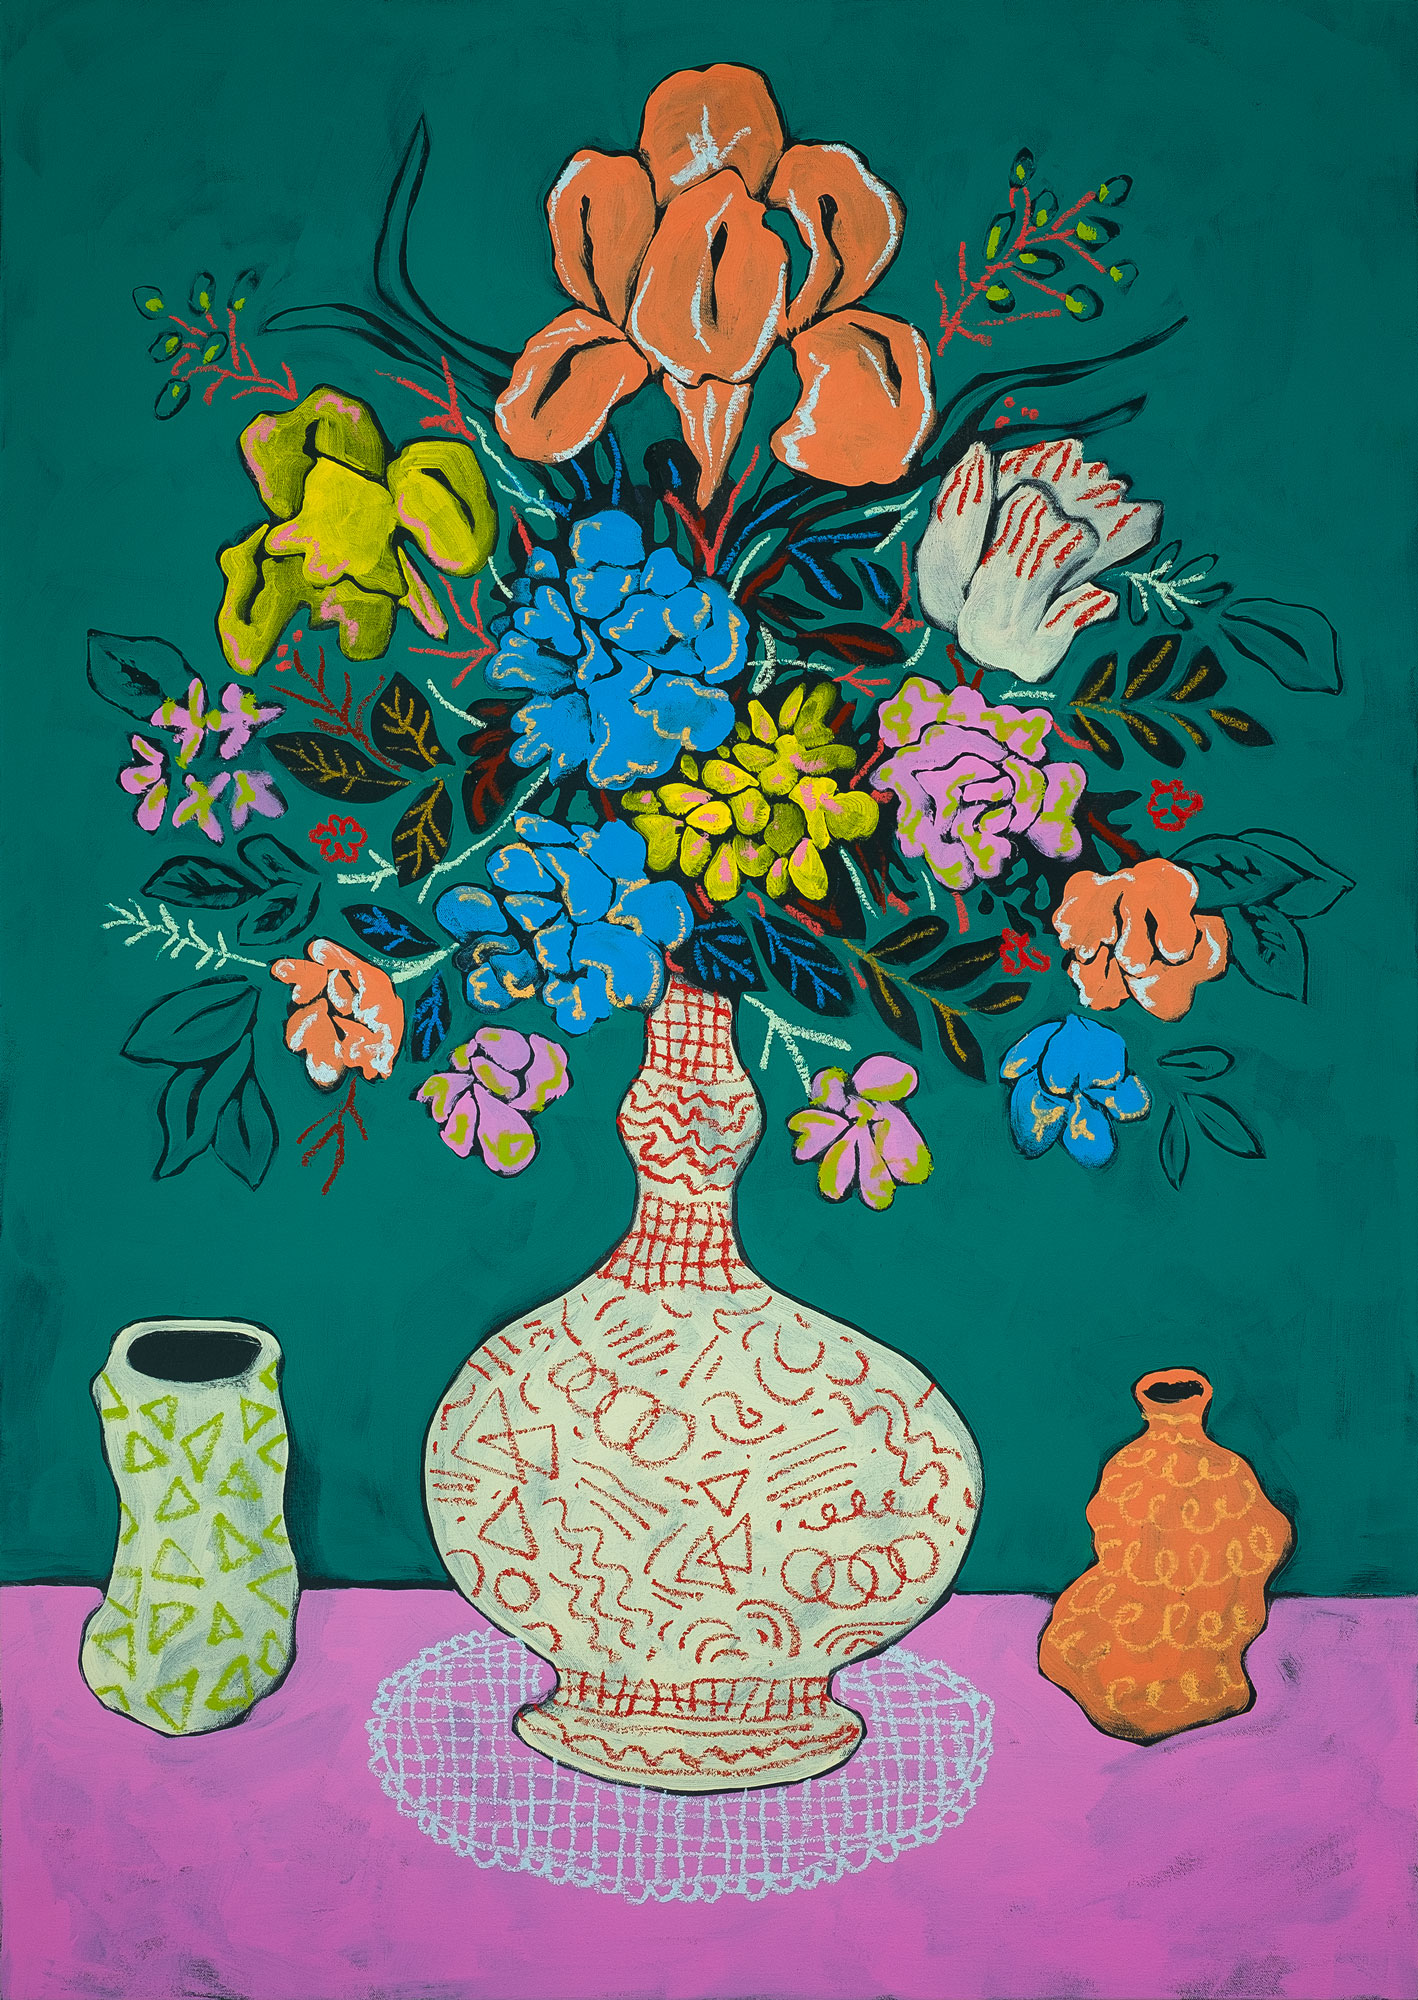 John-Kern-Holcomb-Green-Floral-with-Ceramics.jpg